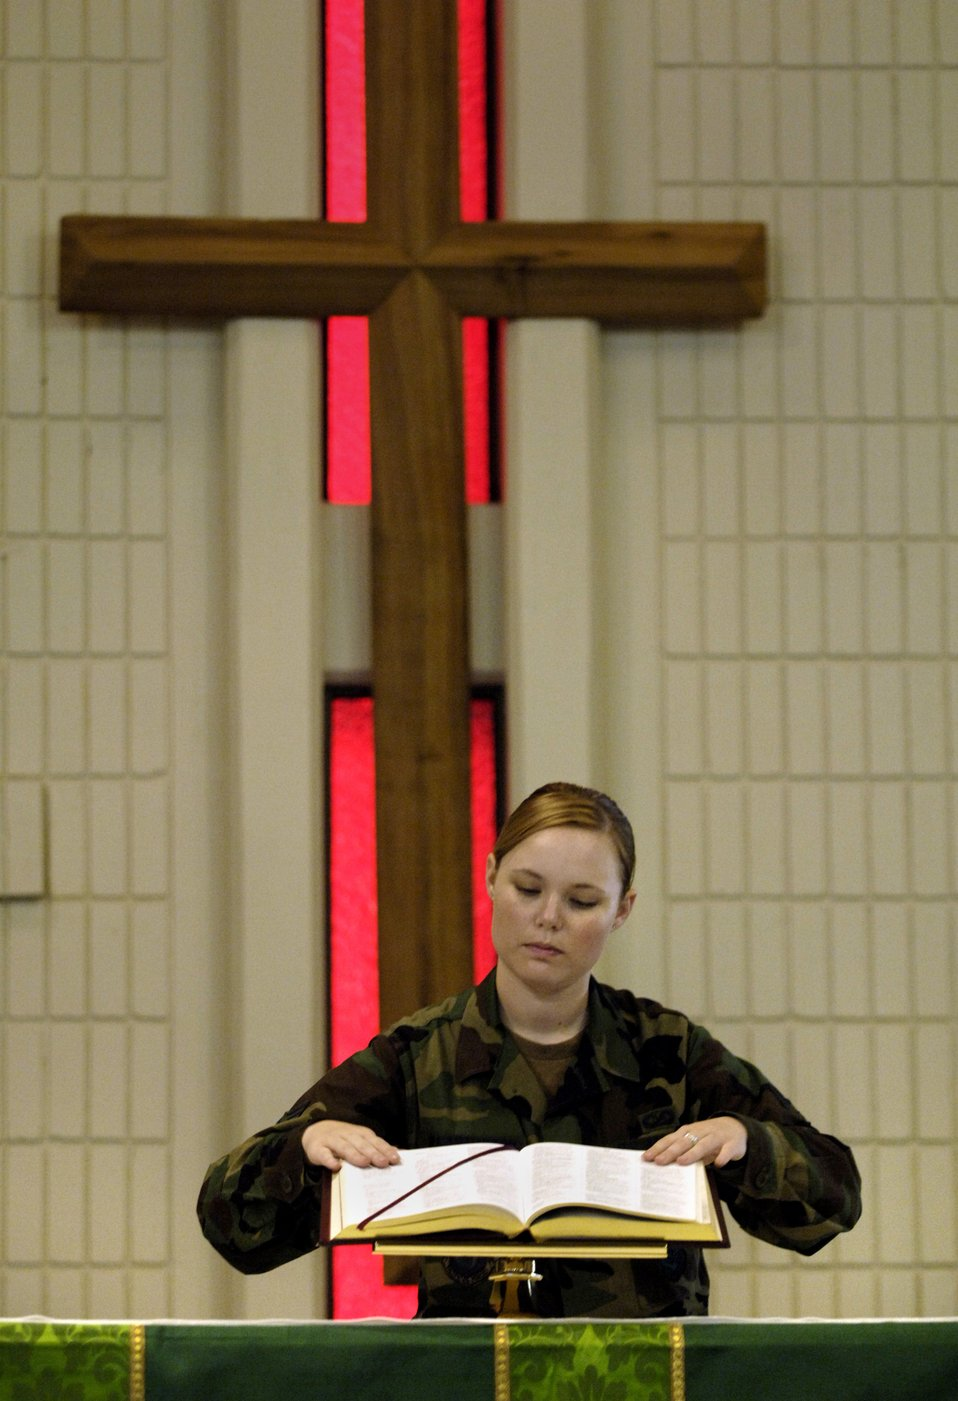 Chapel worker attending ball on Air Force birthday